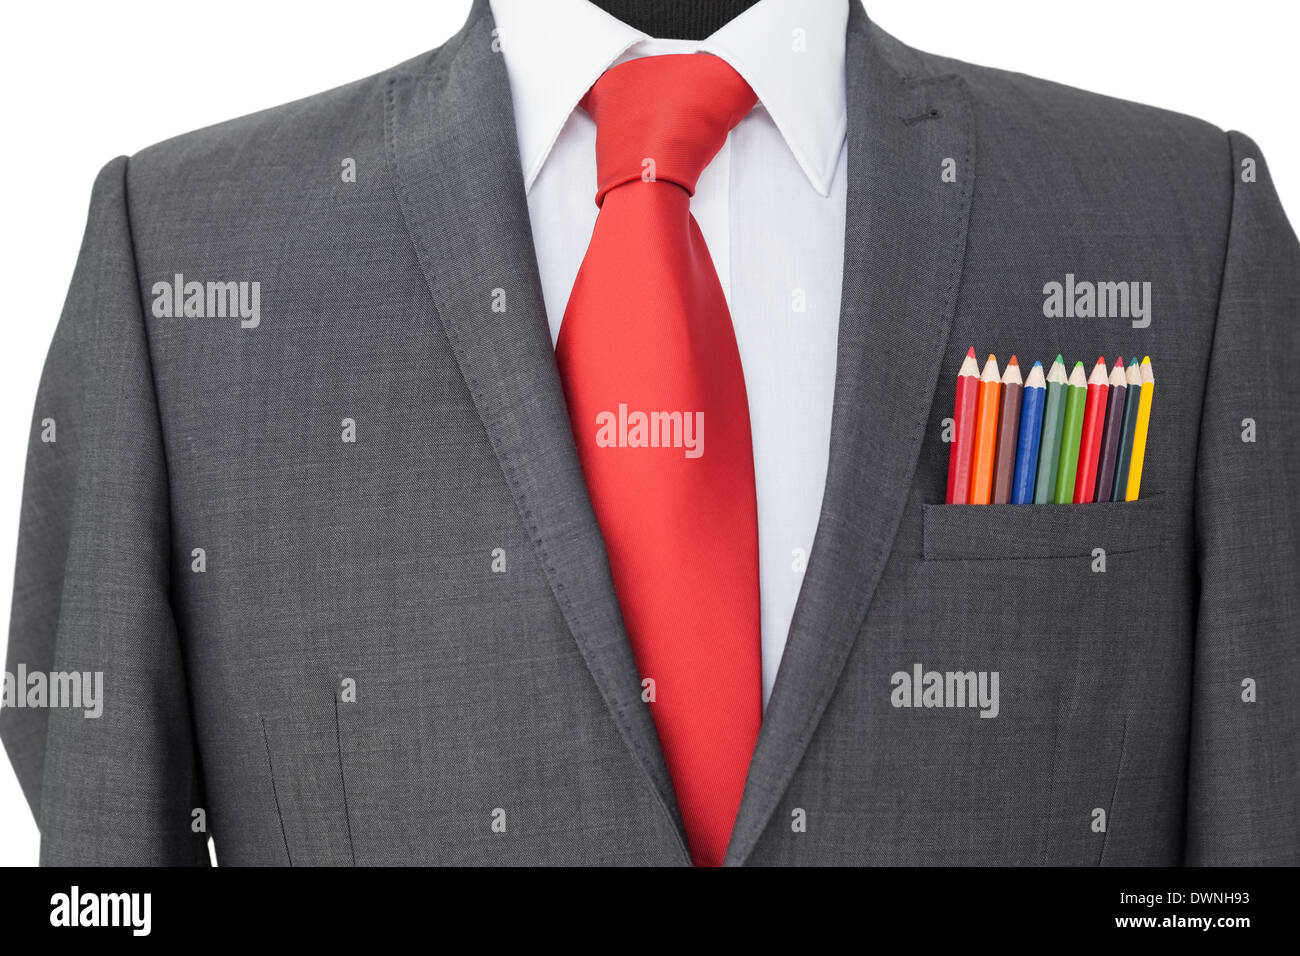 Close-up of colored pencils in coat pocket - Stock Image